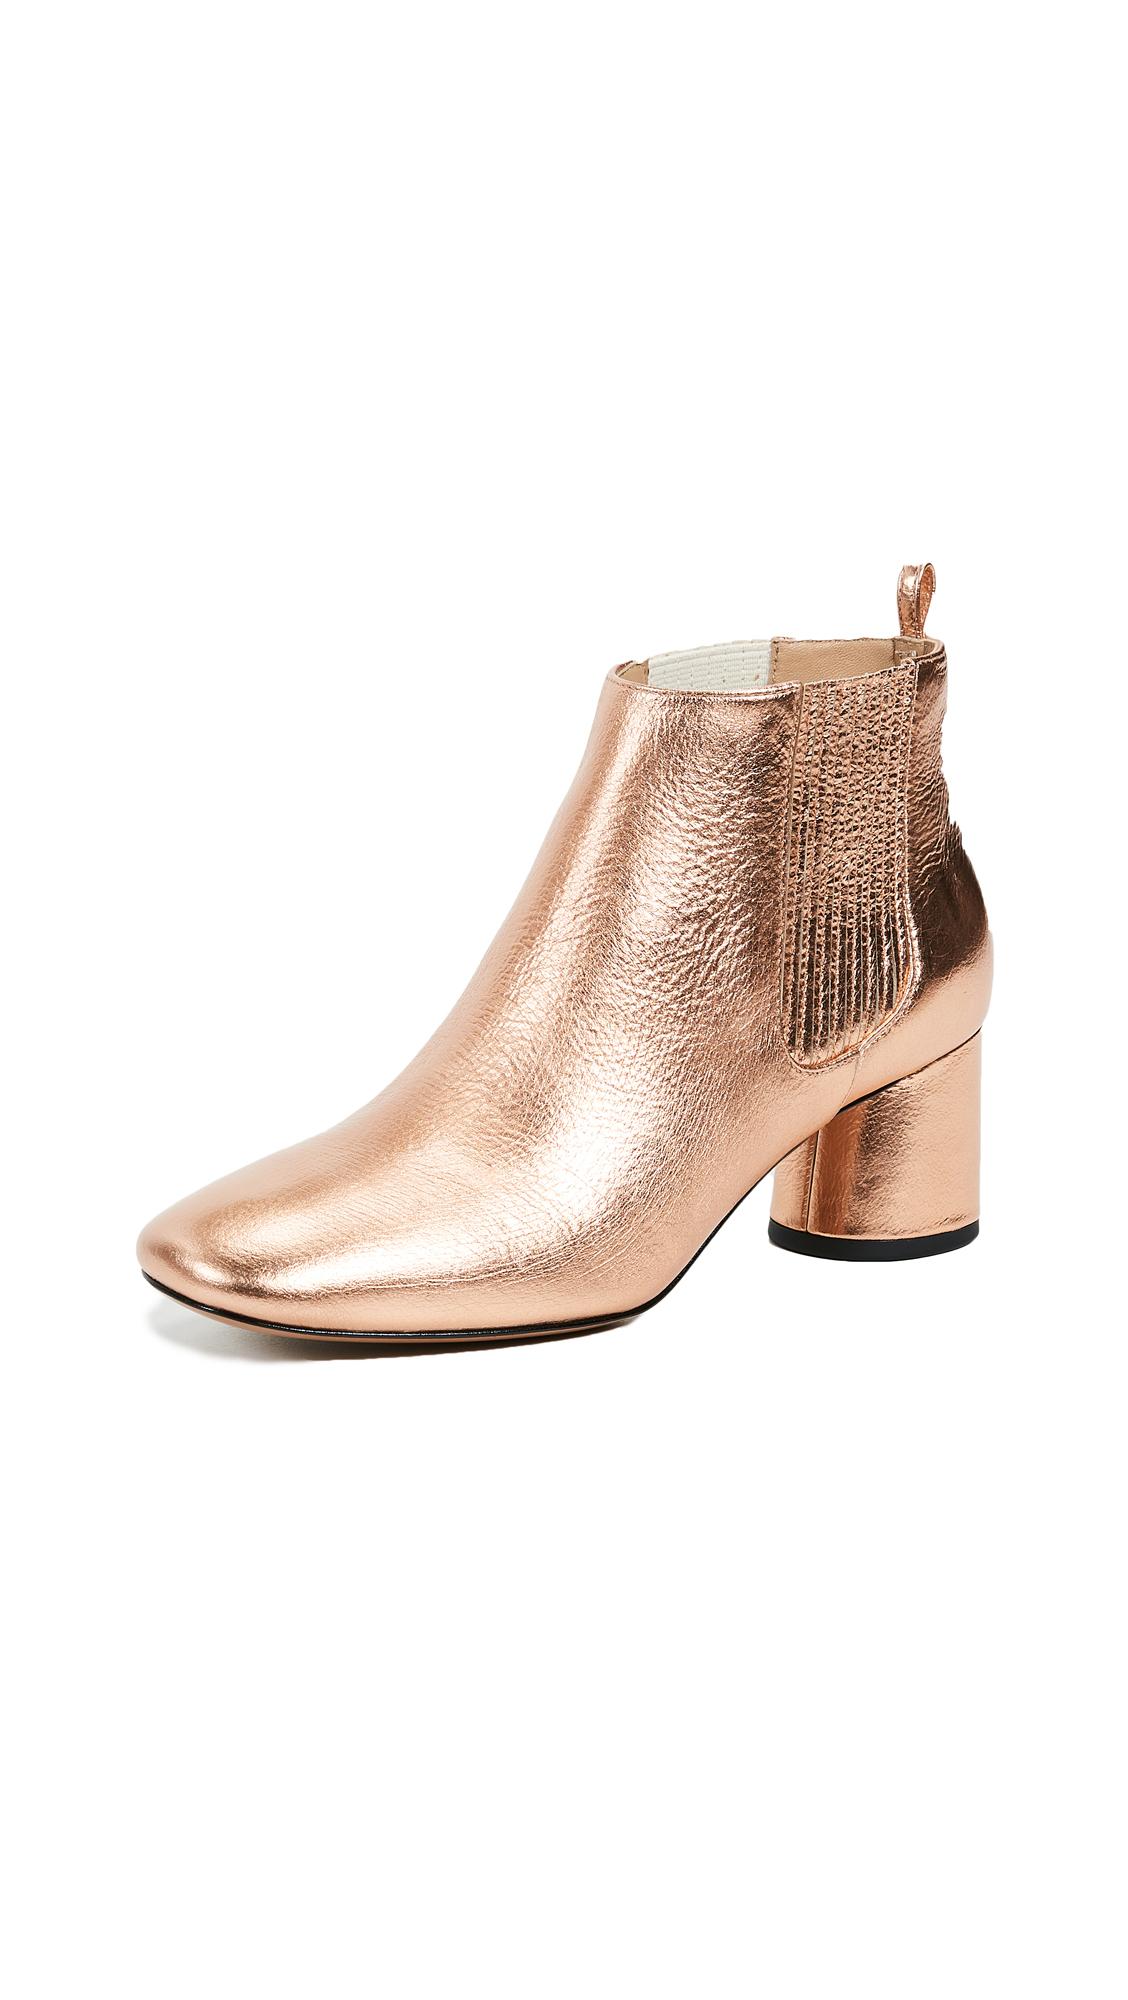 Marc Jacobs Rocket Chelsea Boots - Rose Gold